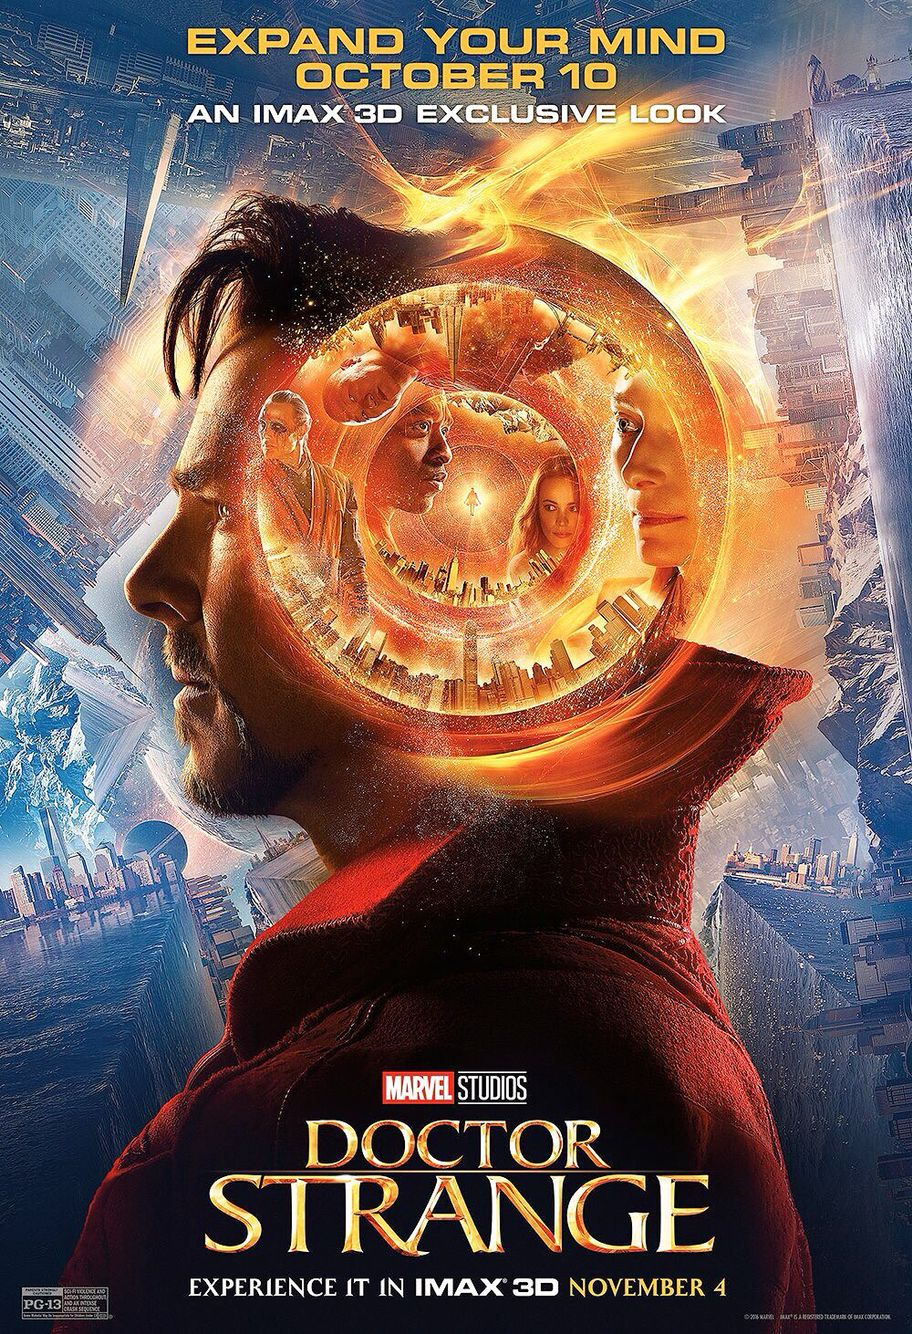 New Imax Movie Poster From Doctor Strange Marvel Doctor Strange Doutor Estranho Dr Estranho